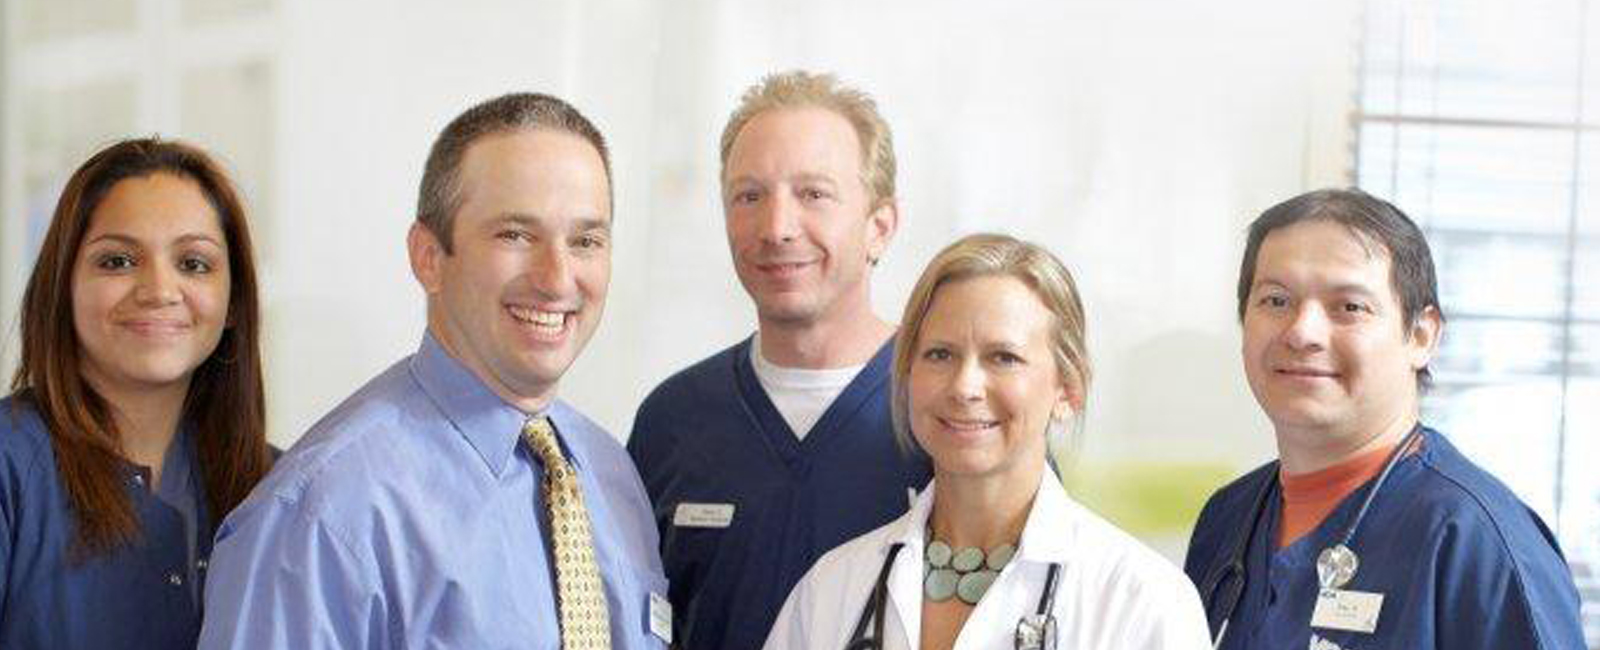 Homepage Team Picture of  VCA Veterinary Referral and Emergency Center